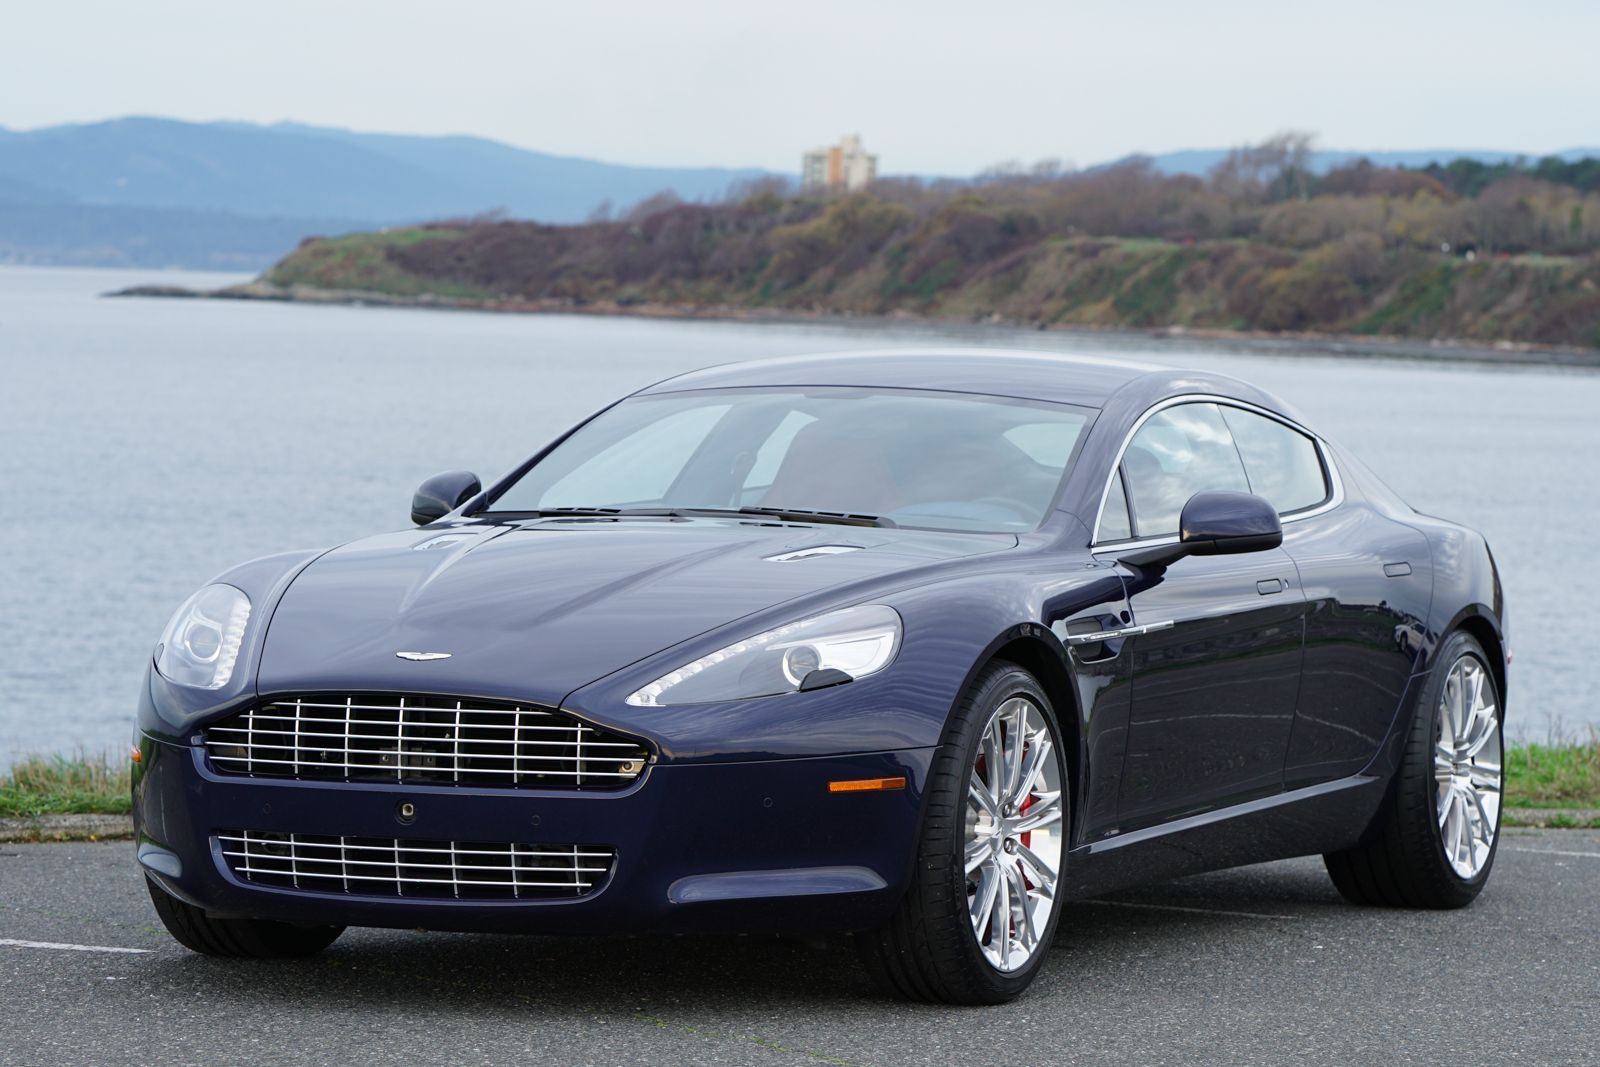 2012 Aston Martin Rapide Lease Your Next Aston Martin With Premier Financial Services Today Astonmartin Rapide Aston Martin Rapide Aston Martin Aston